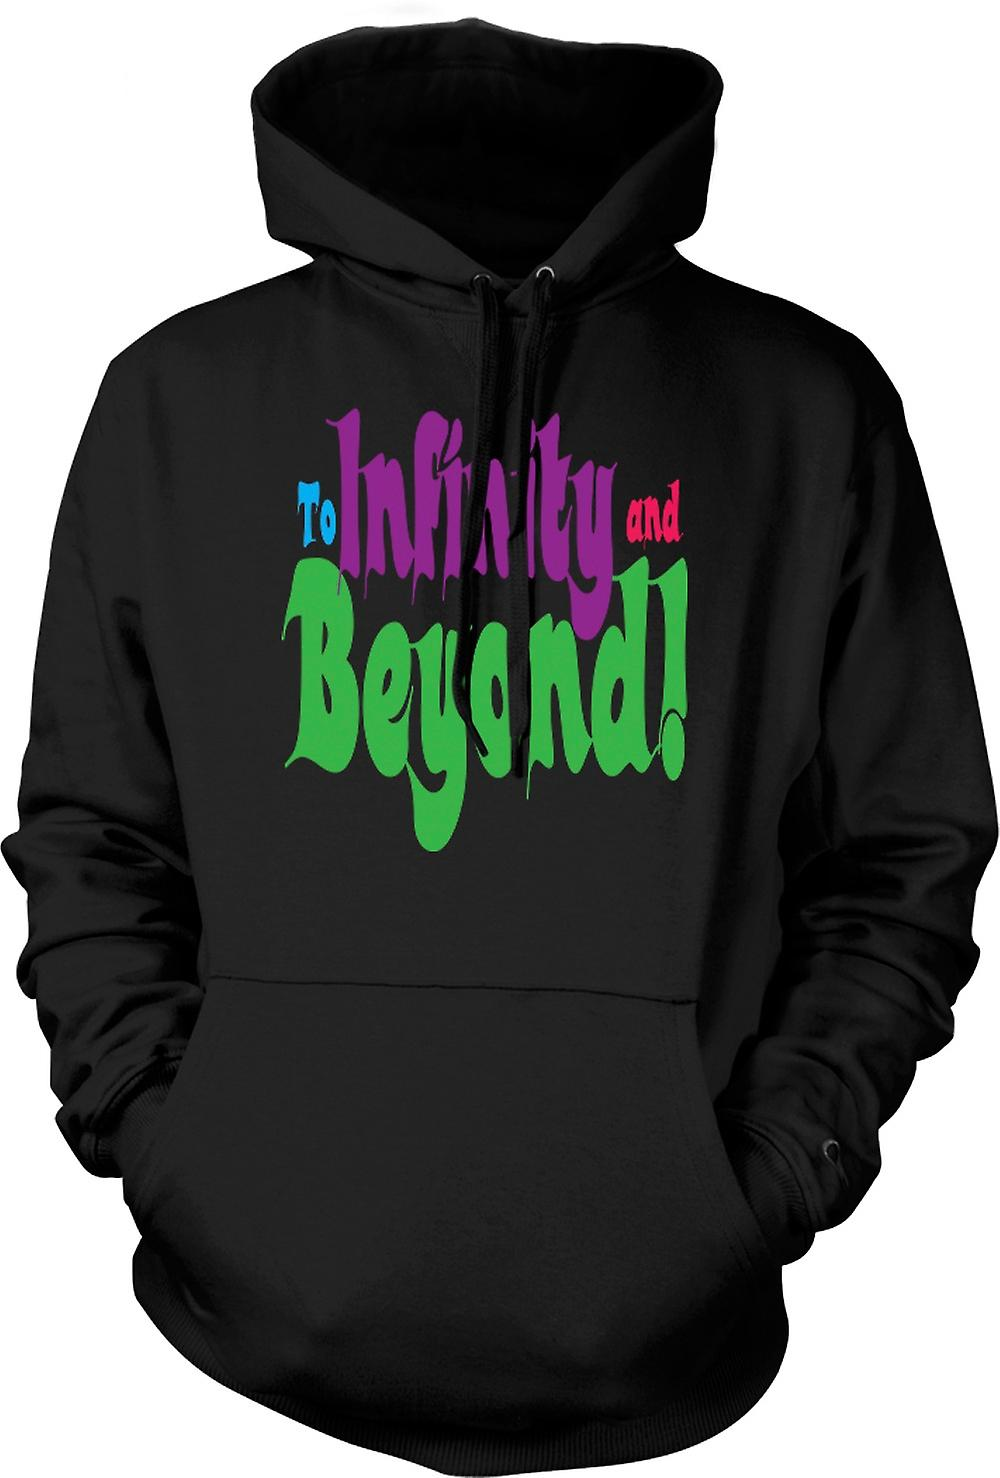 Mens Hoodie - To Infinity And Beyond! - Funny Quote